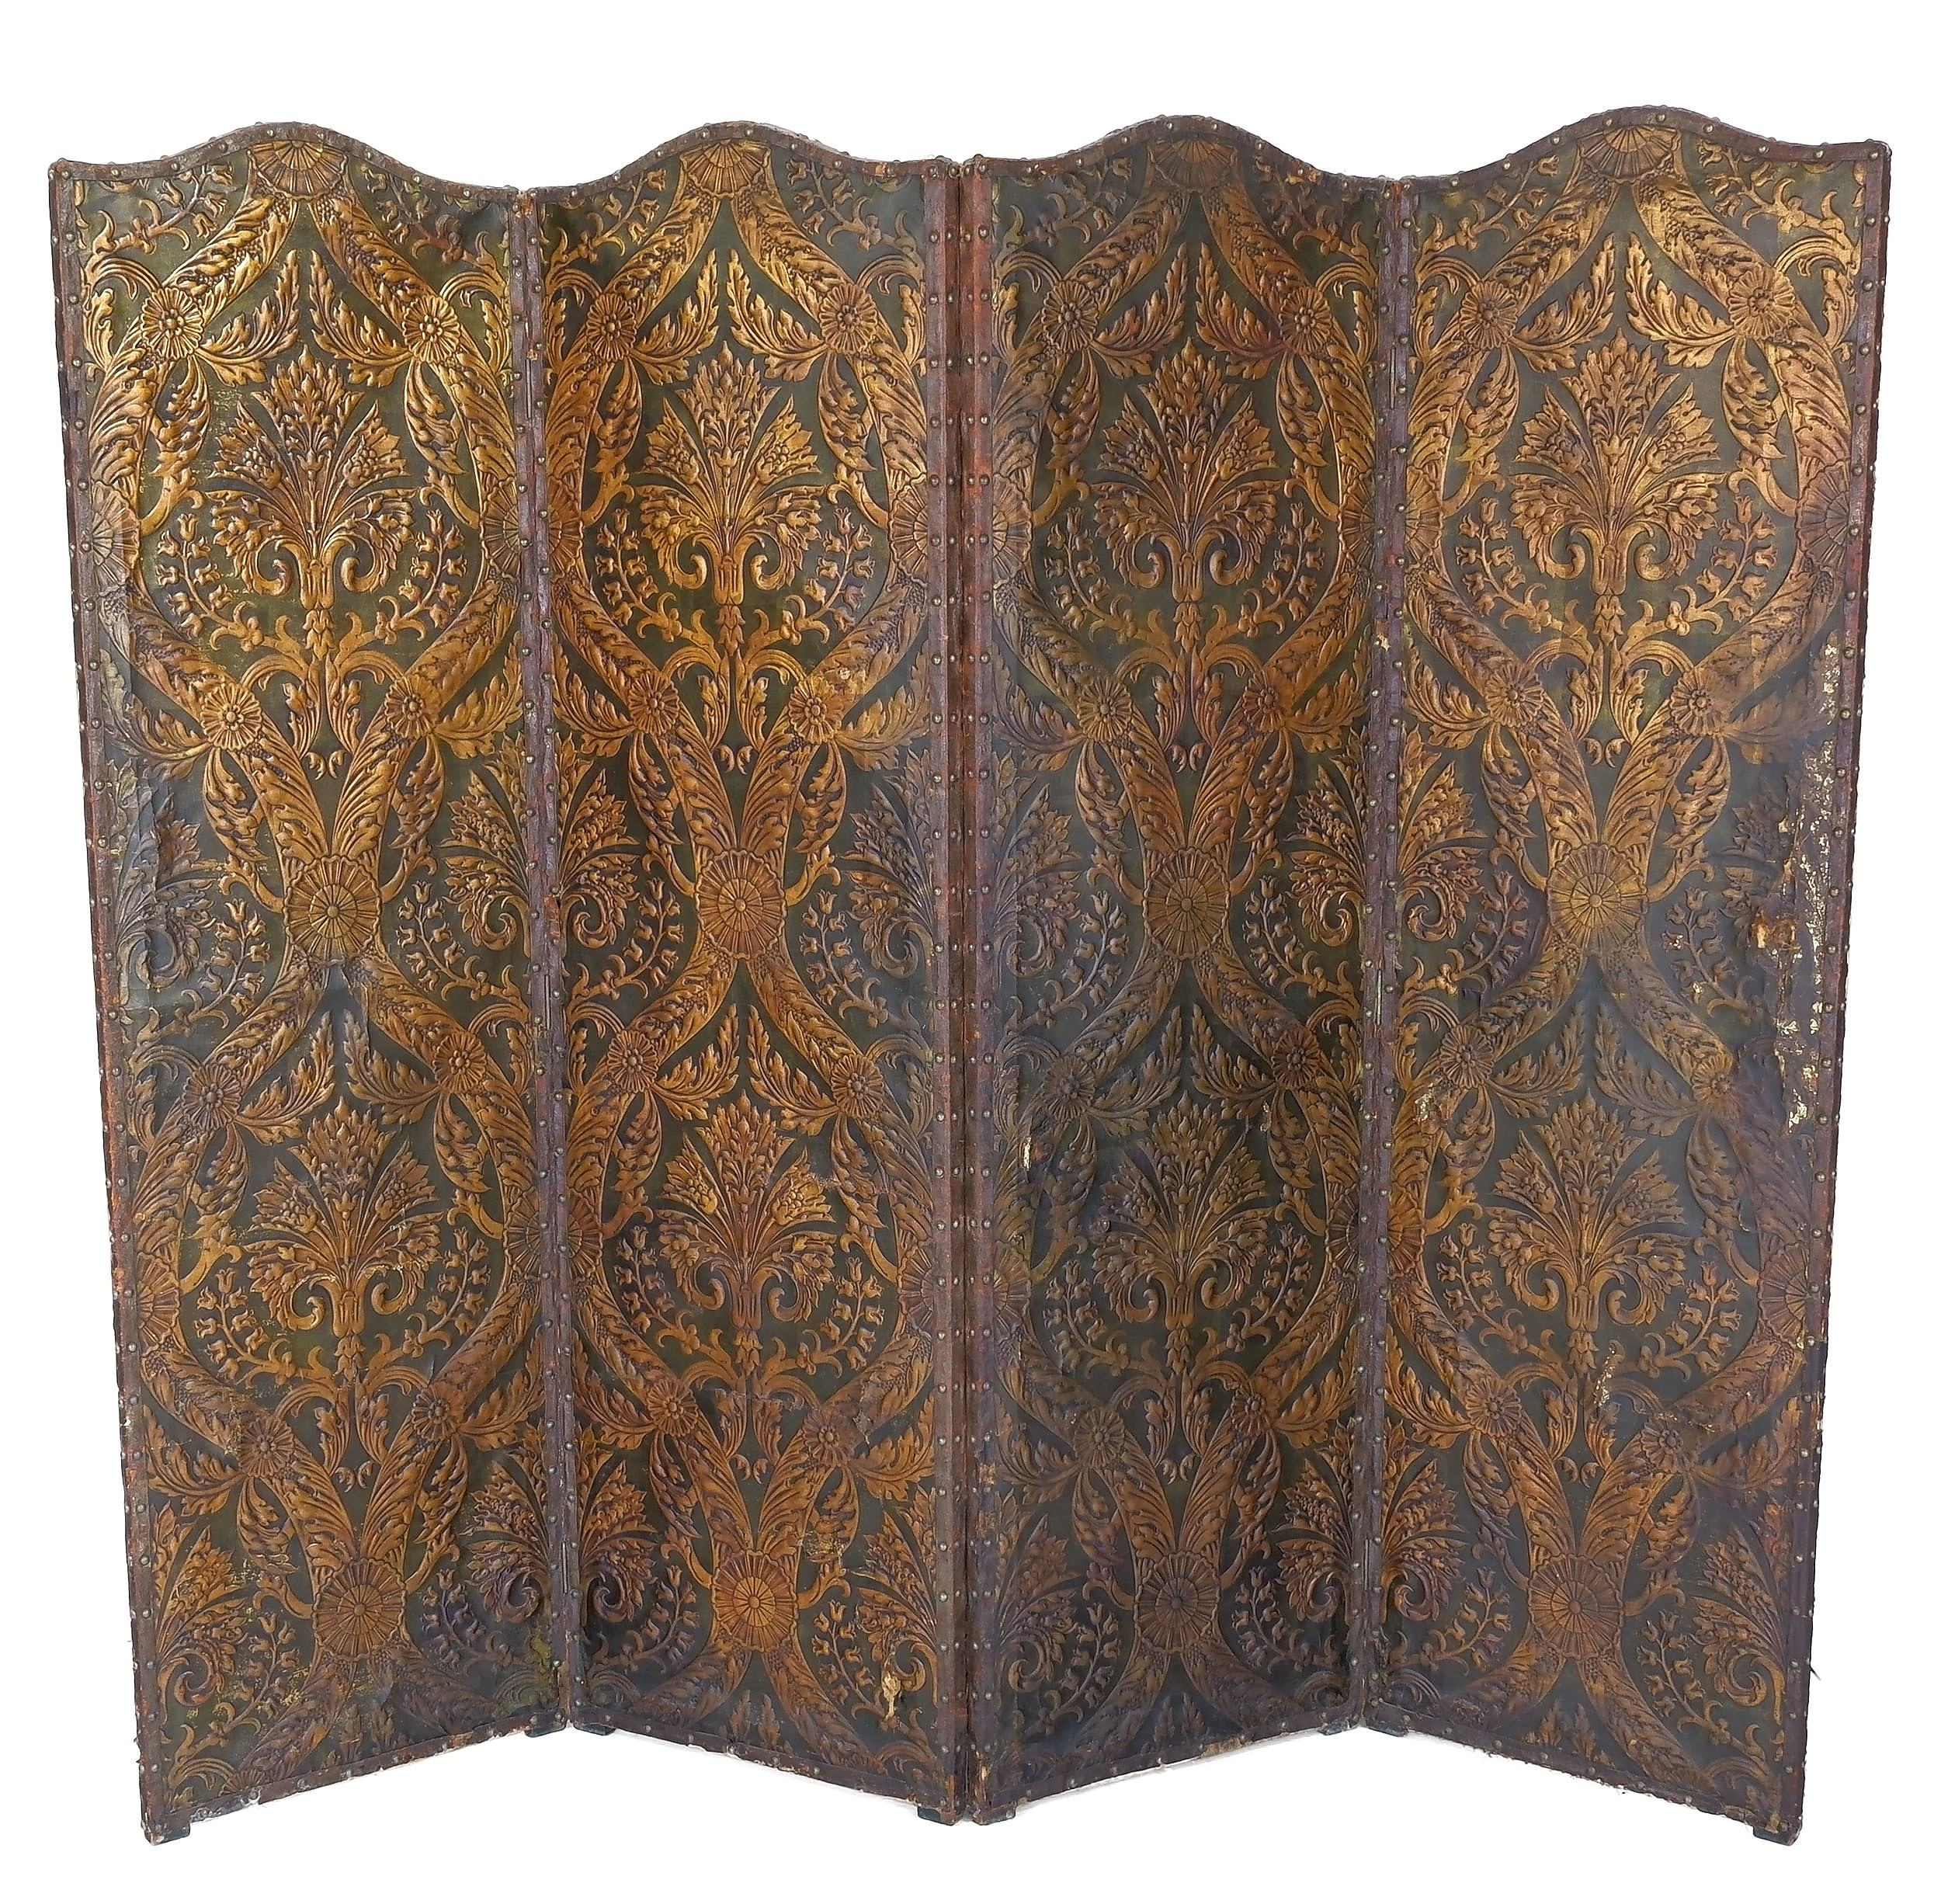 'Large Vintage Embossed Parchment, Fabric, and Brass Studded Leather Trimmed Fourfold Screen'